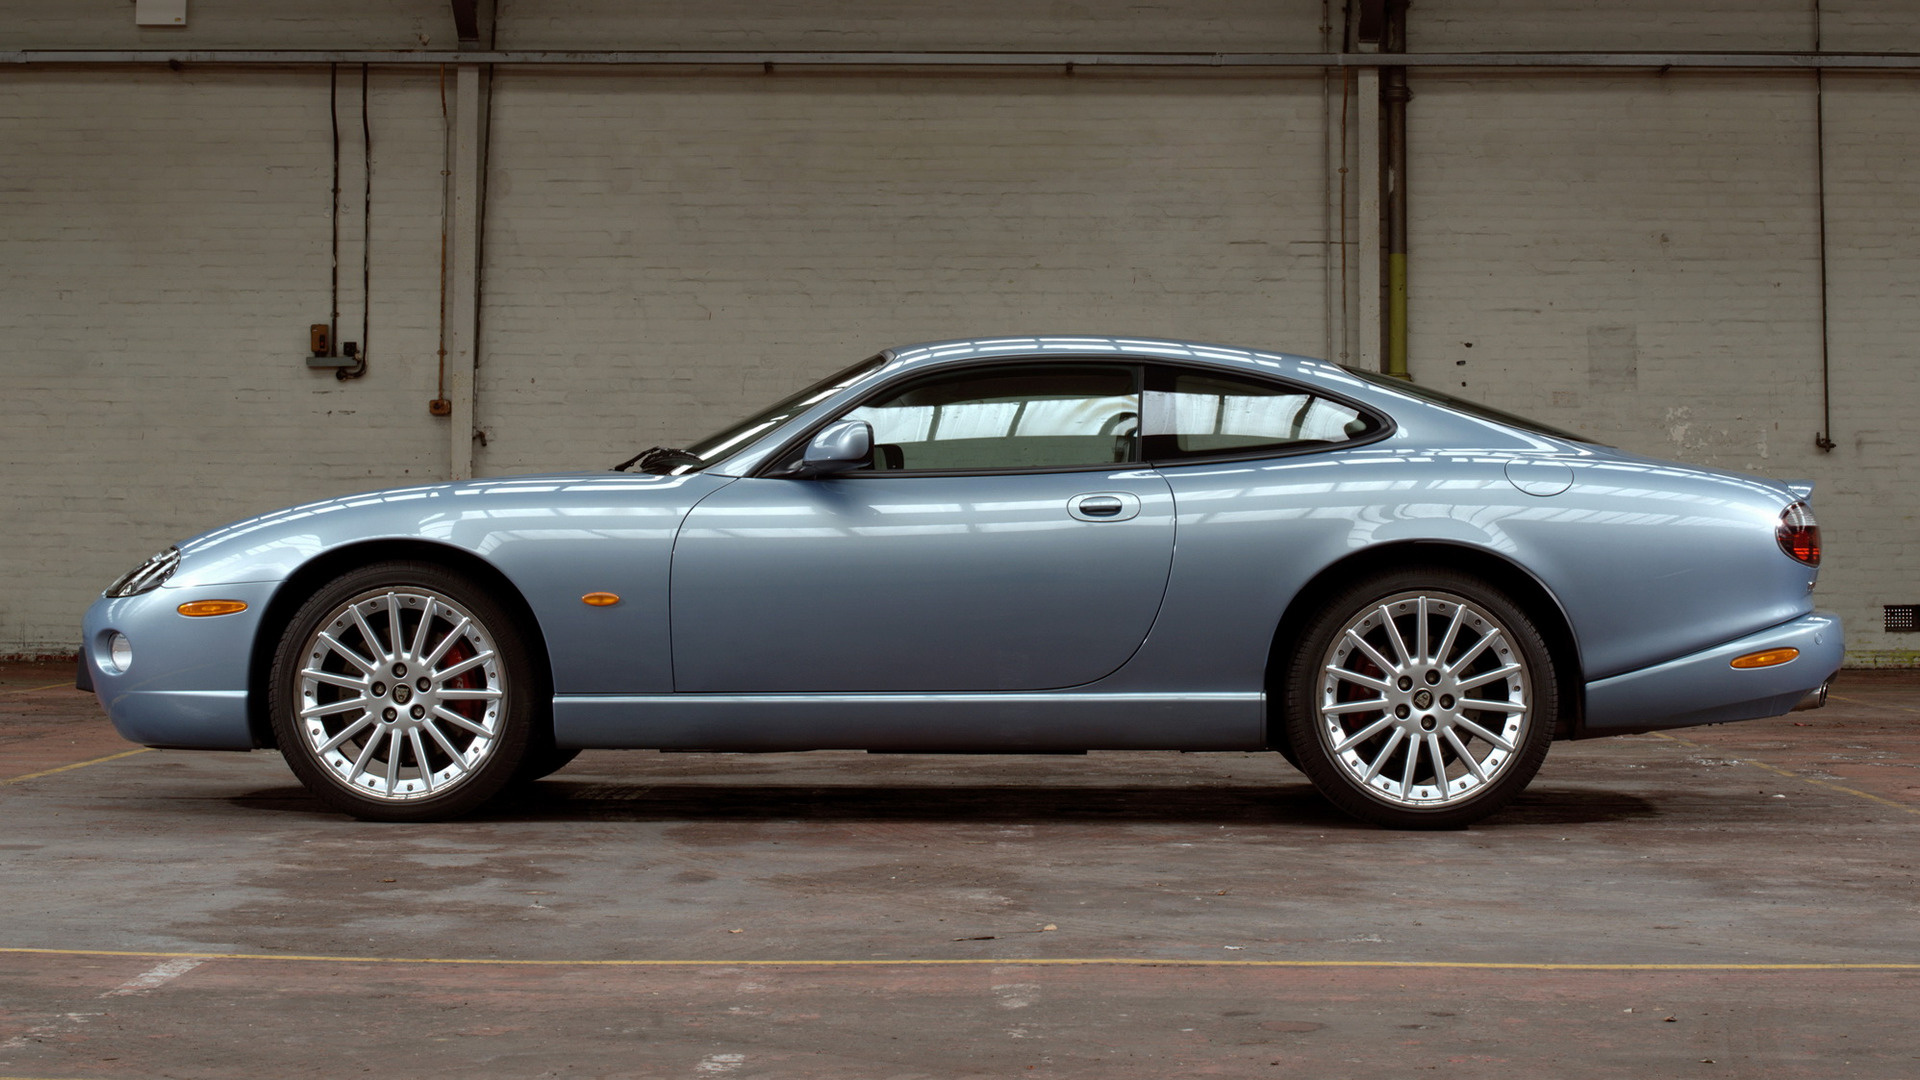 Jaguar XKR Coupe 2004 Wallpapers and HD Images  Car Pixel